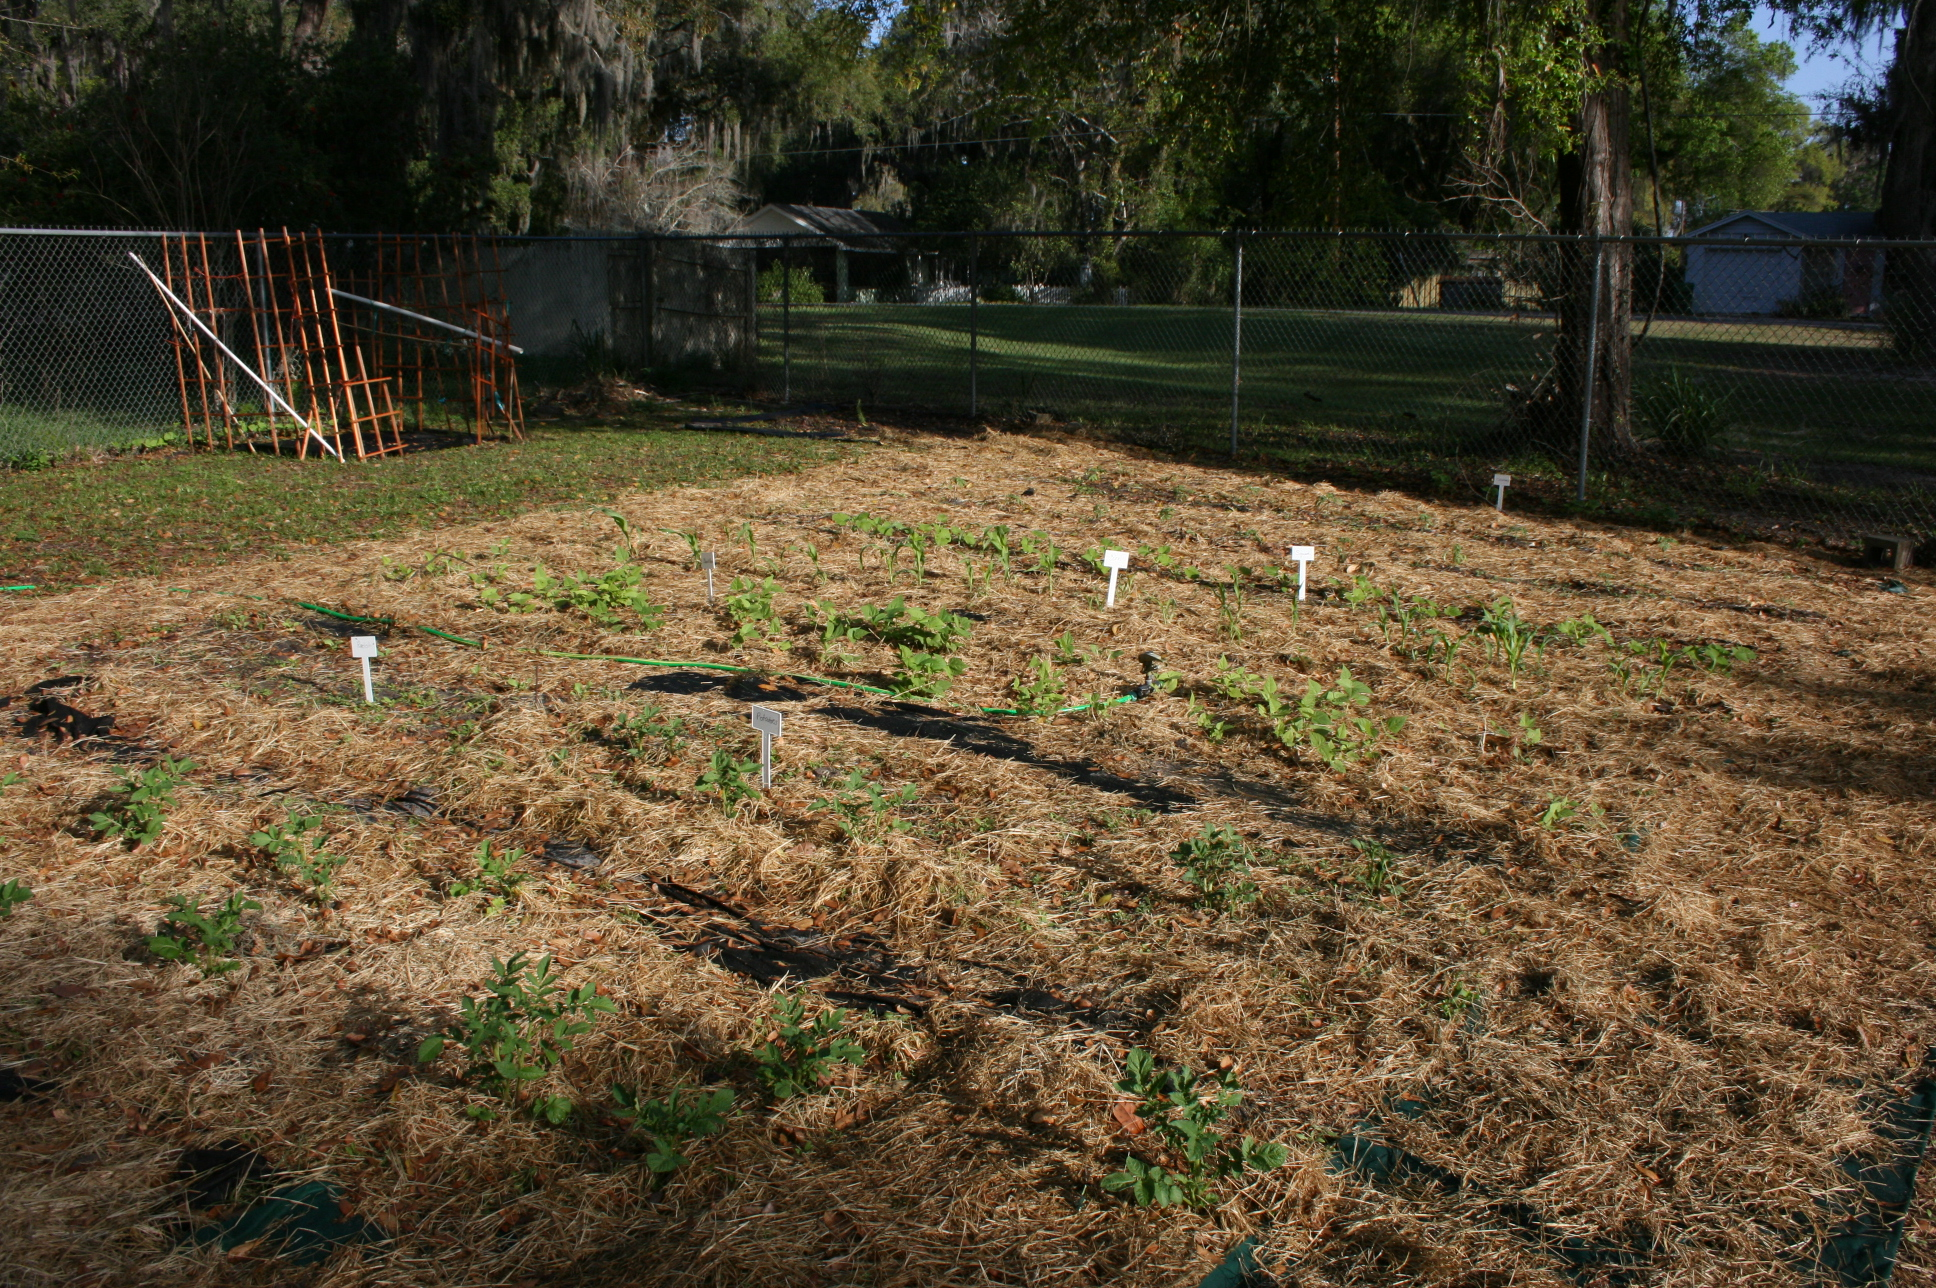 School Gardens Rock with Fun and Learning for Students